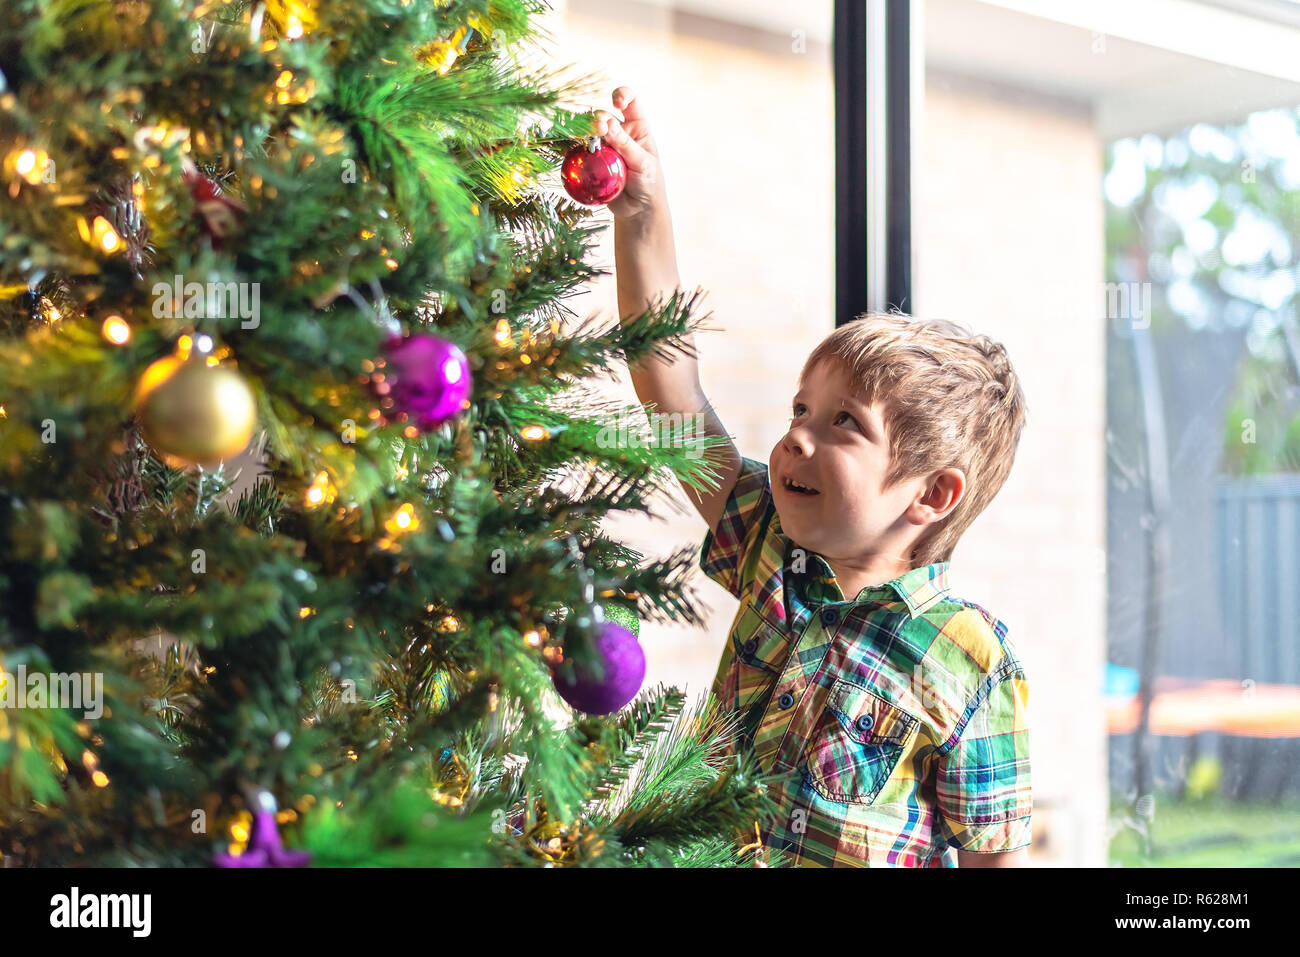 Cute smiling child decorating a Christmas tree in South Australia - Stock Image